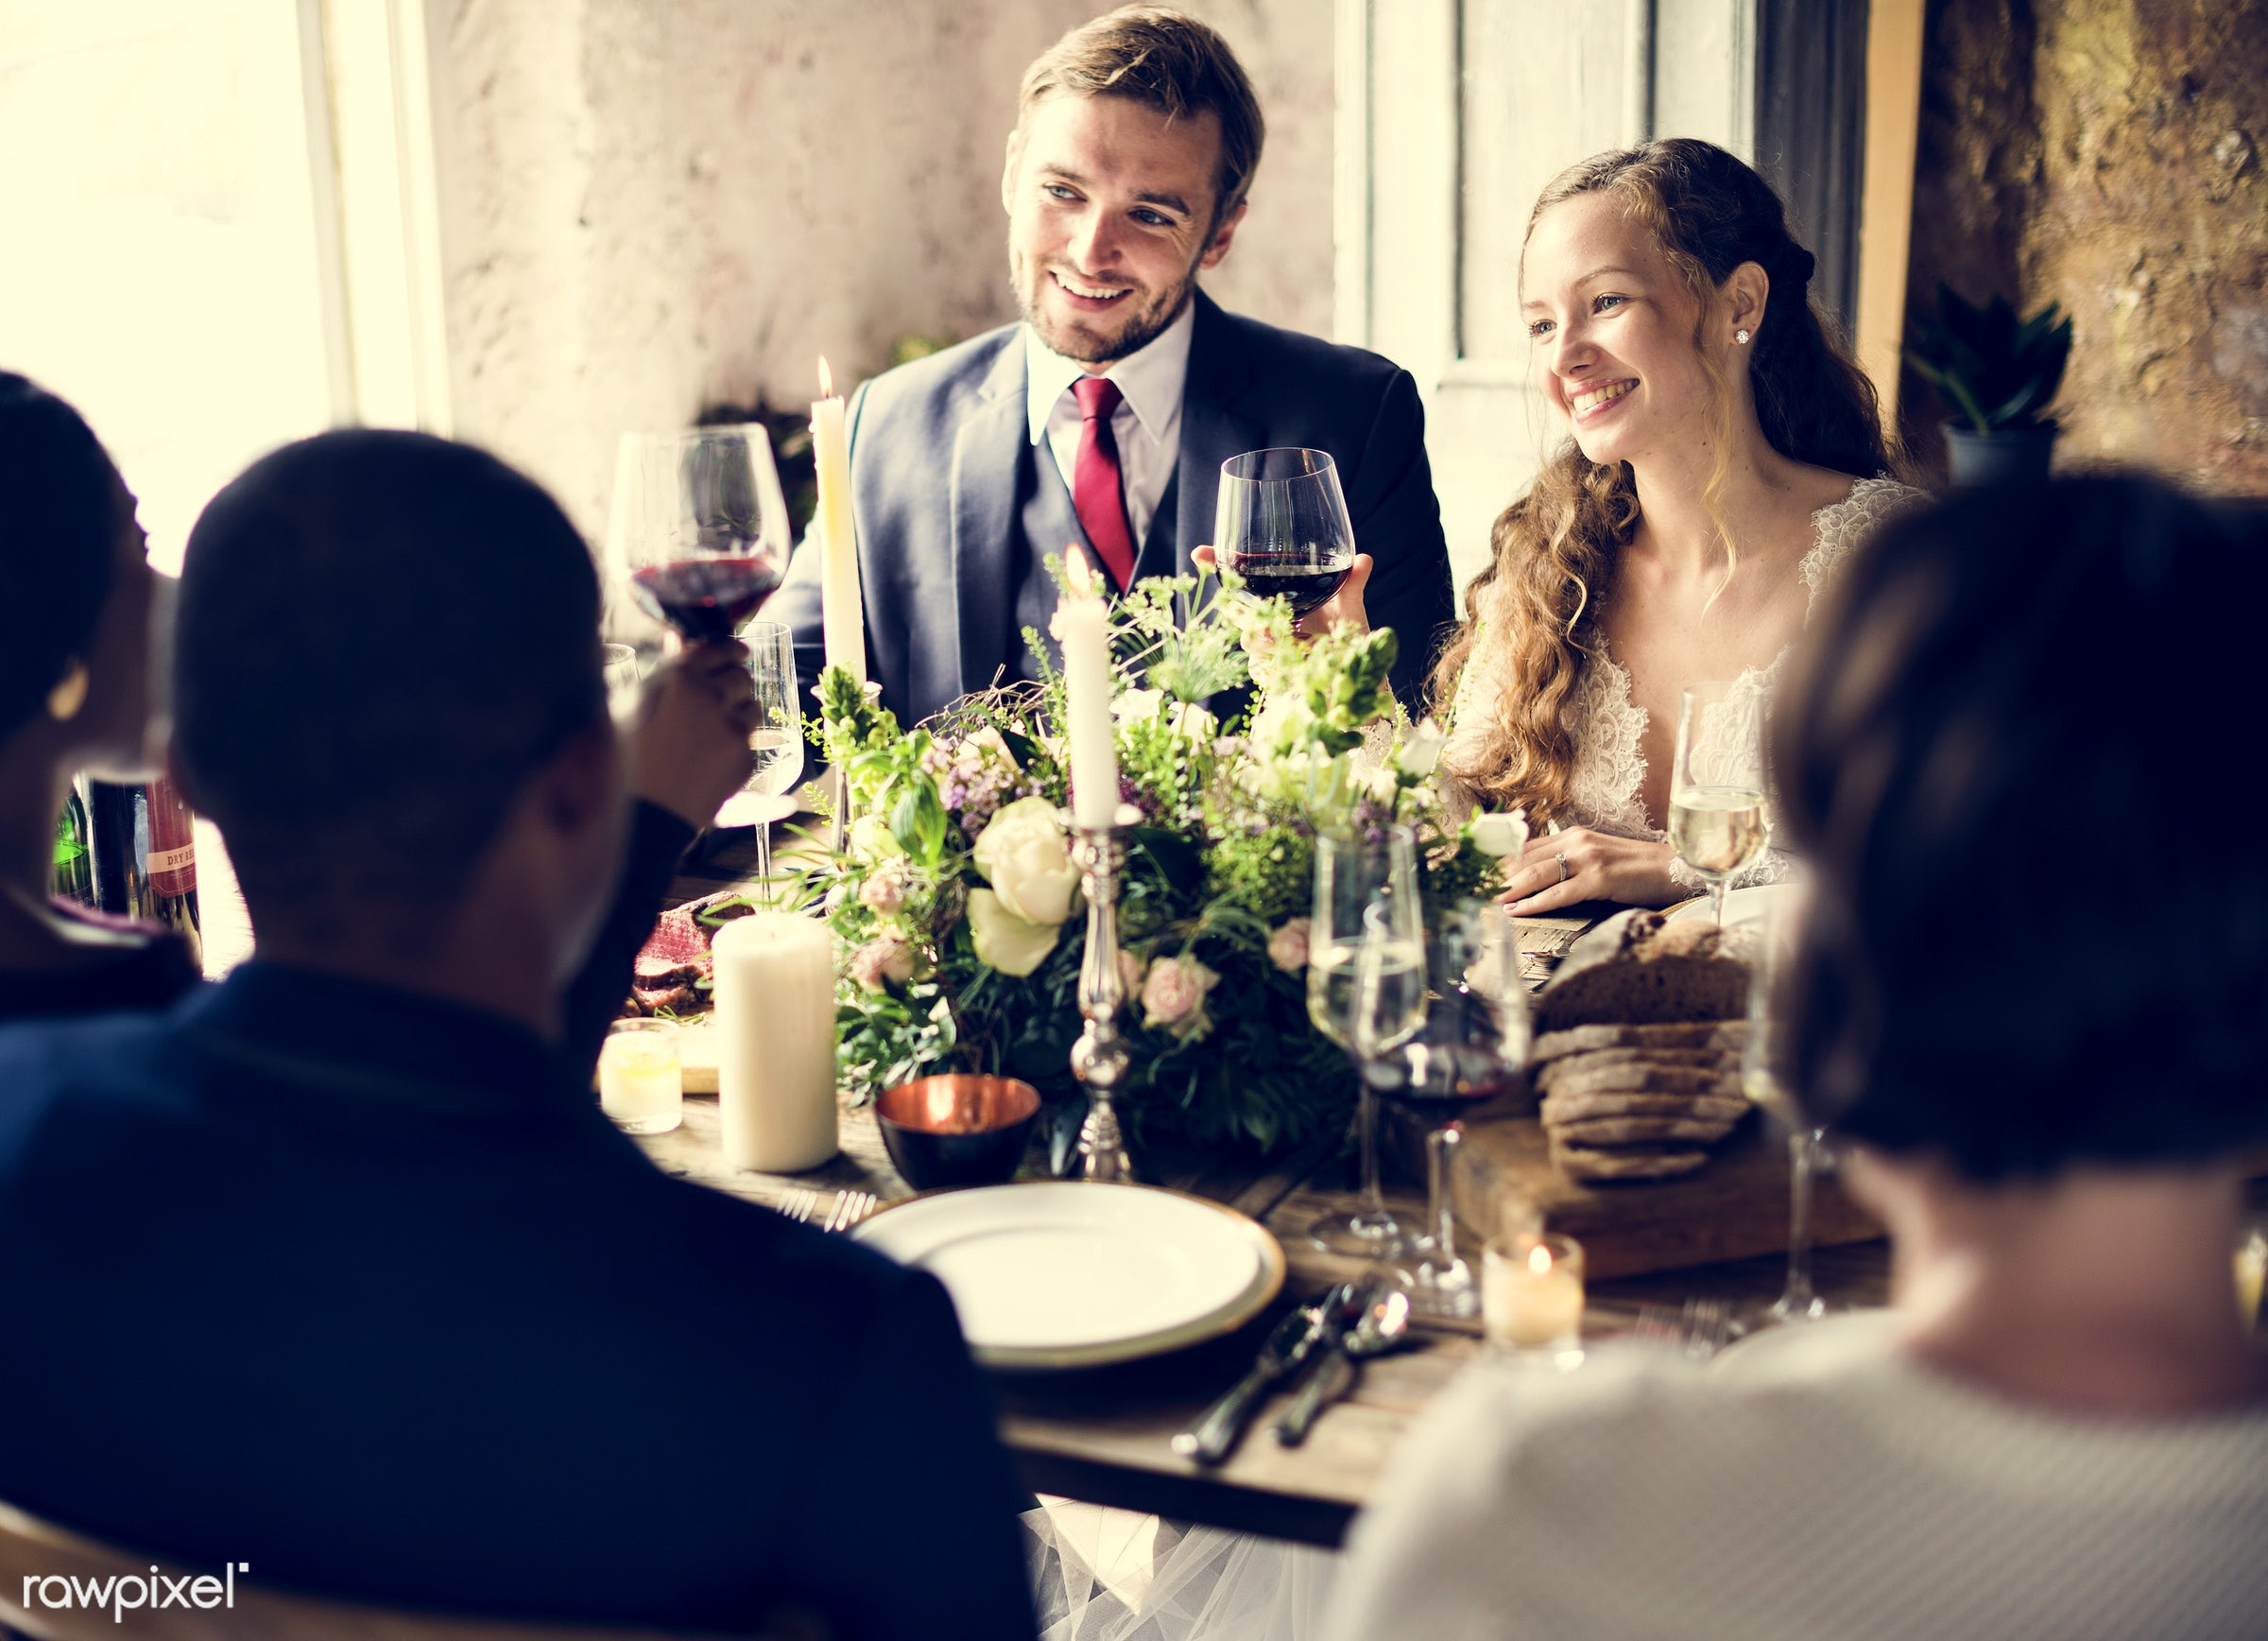 expression, person, holding, occasion, smitten, restaurant, husband, people, together, love, married, friends, event, woman...